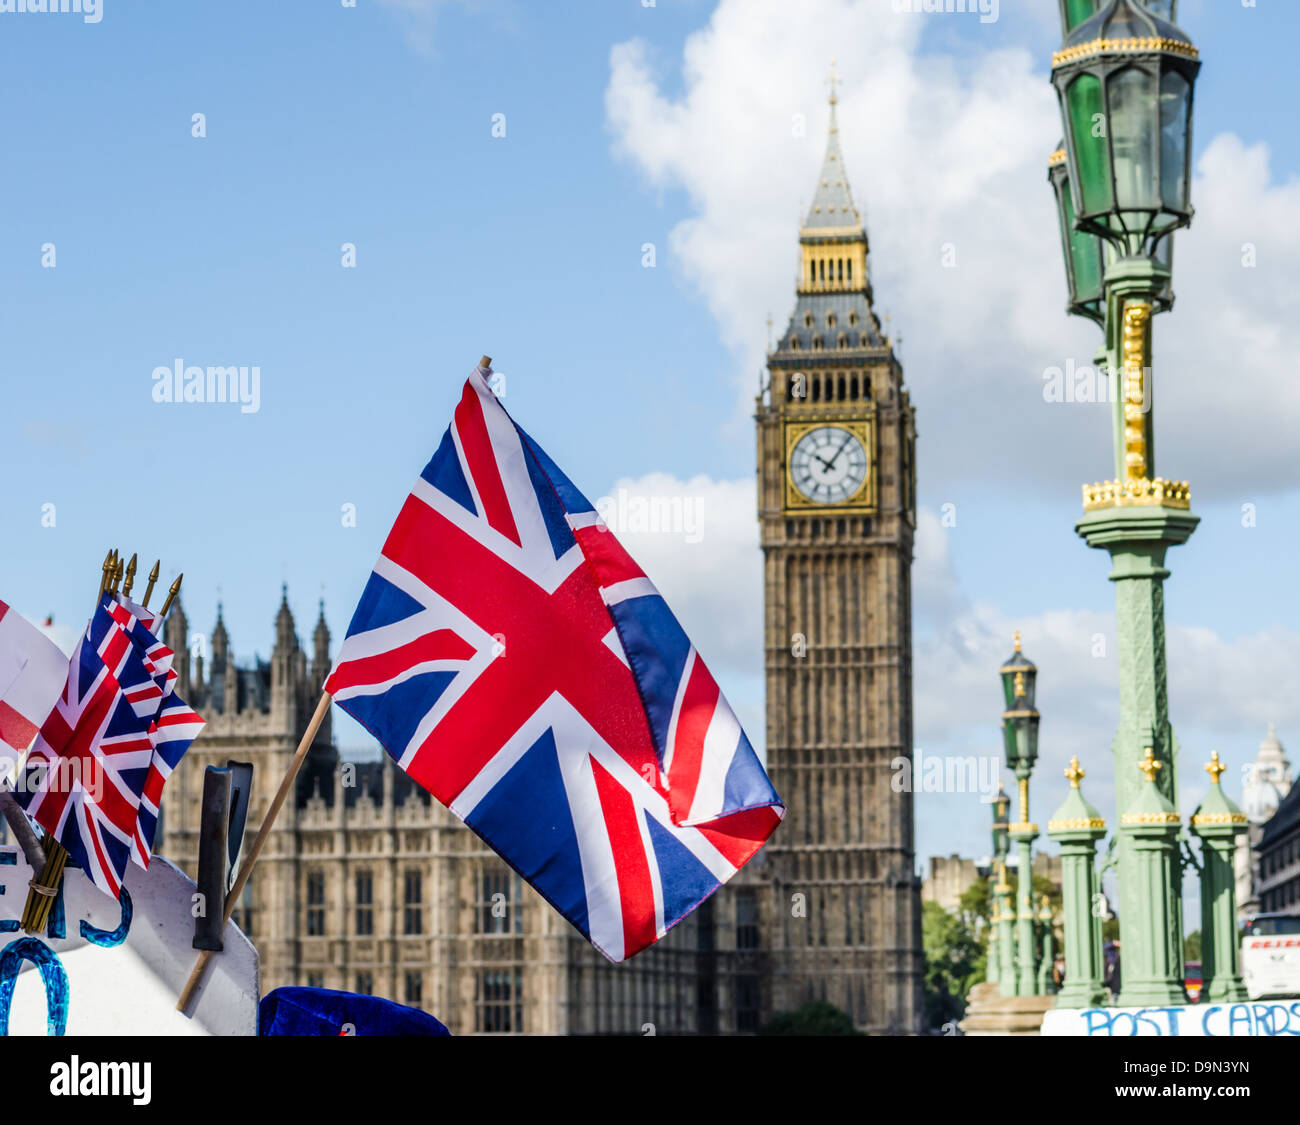 Union Jack Flag And Big Ben In The Background London England